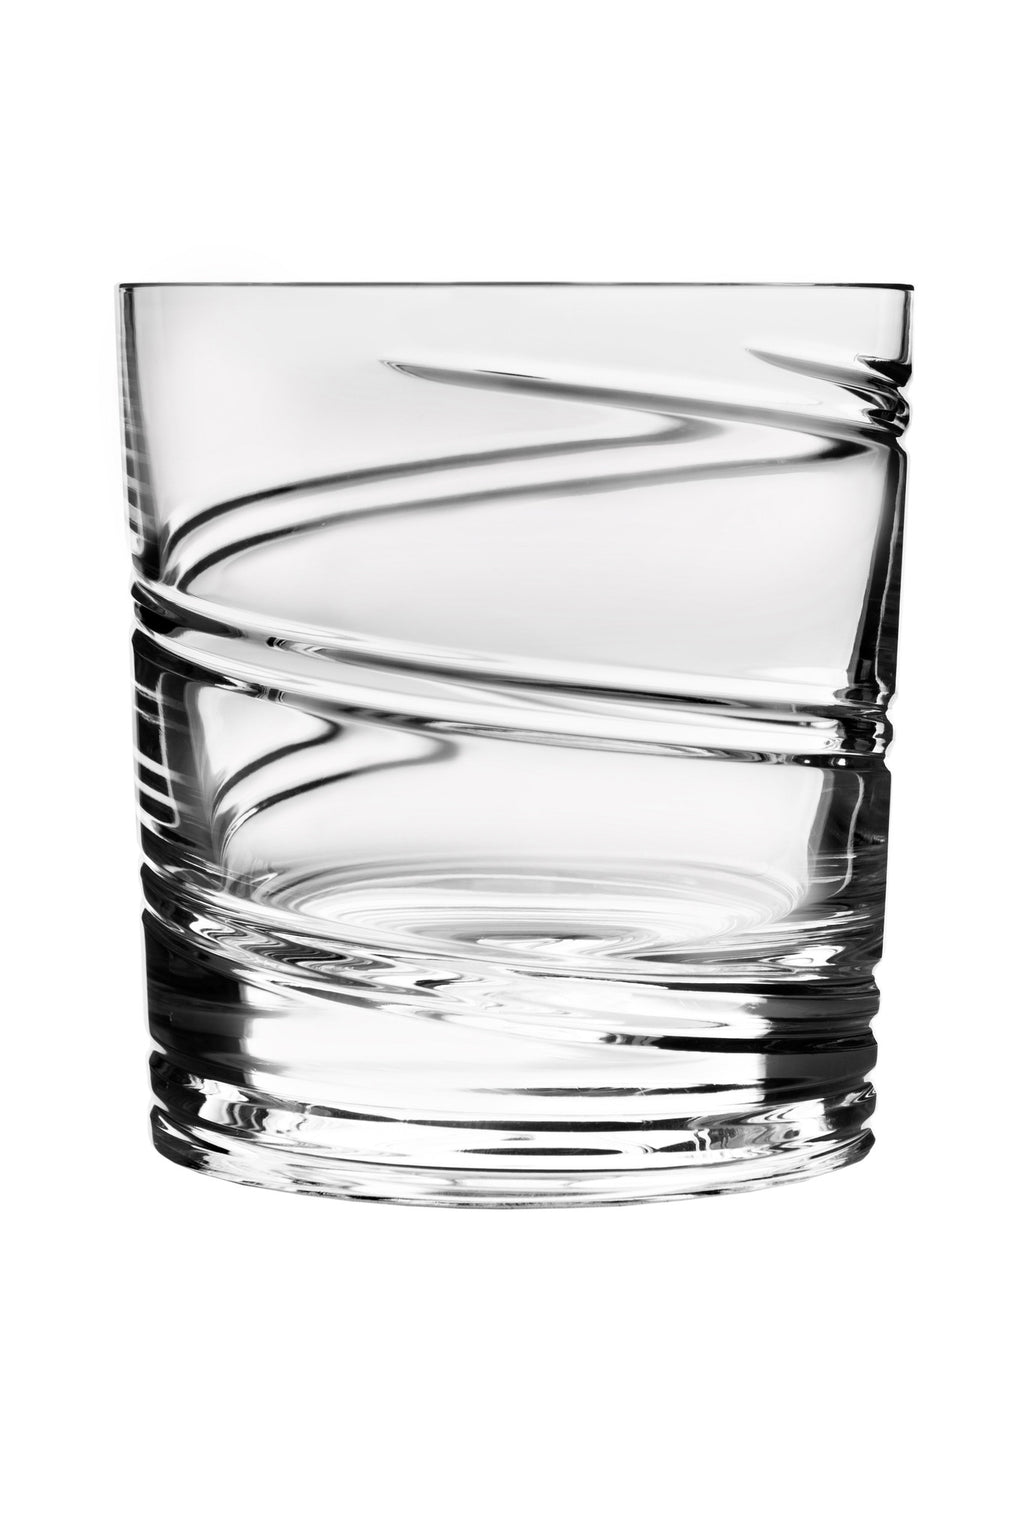 "Shtox ""Spiral"" Tumbler Crystal with Rotating Pattern by Shtox"